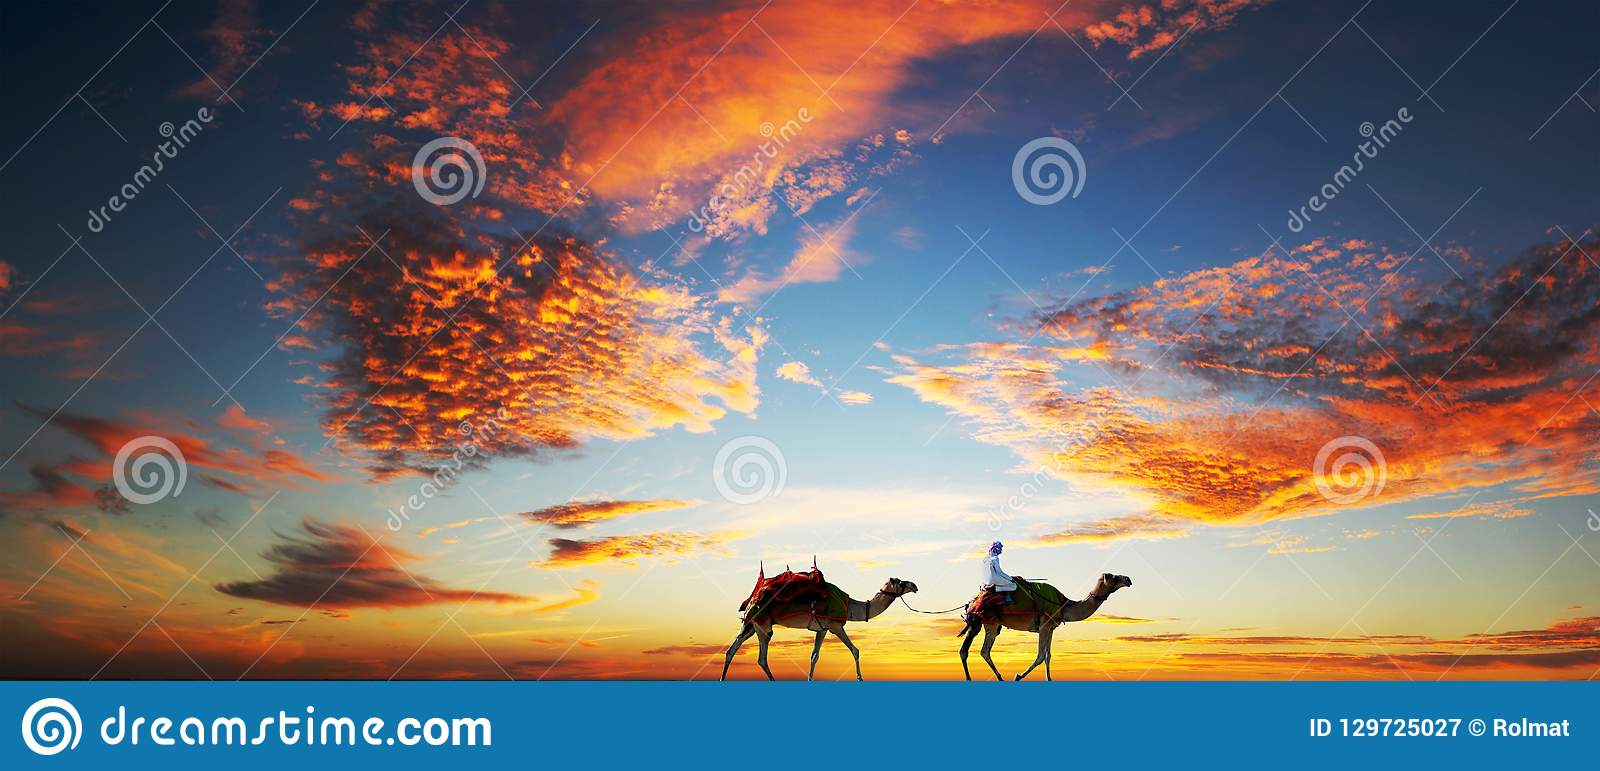 Camels under a dramatic sky